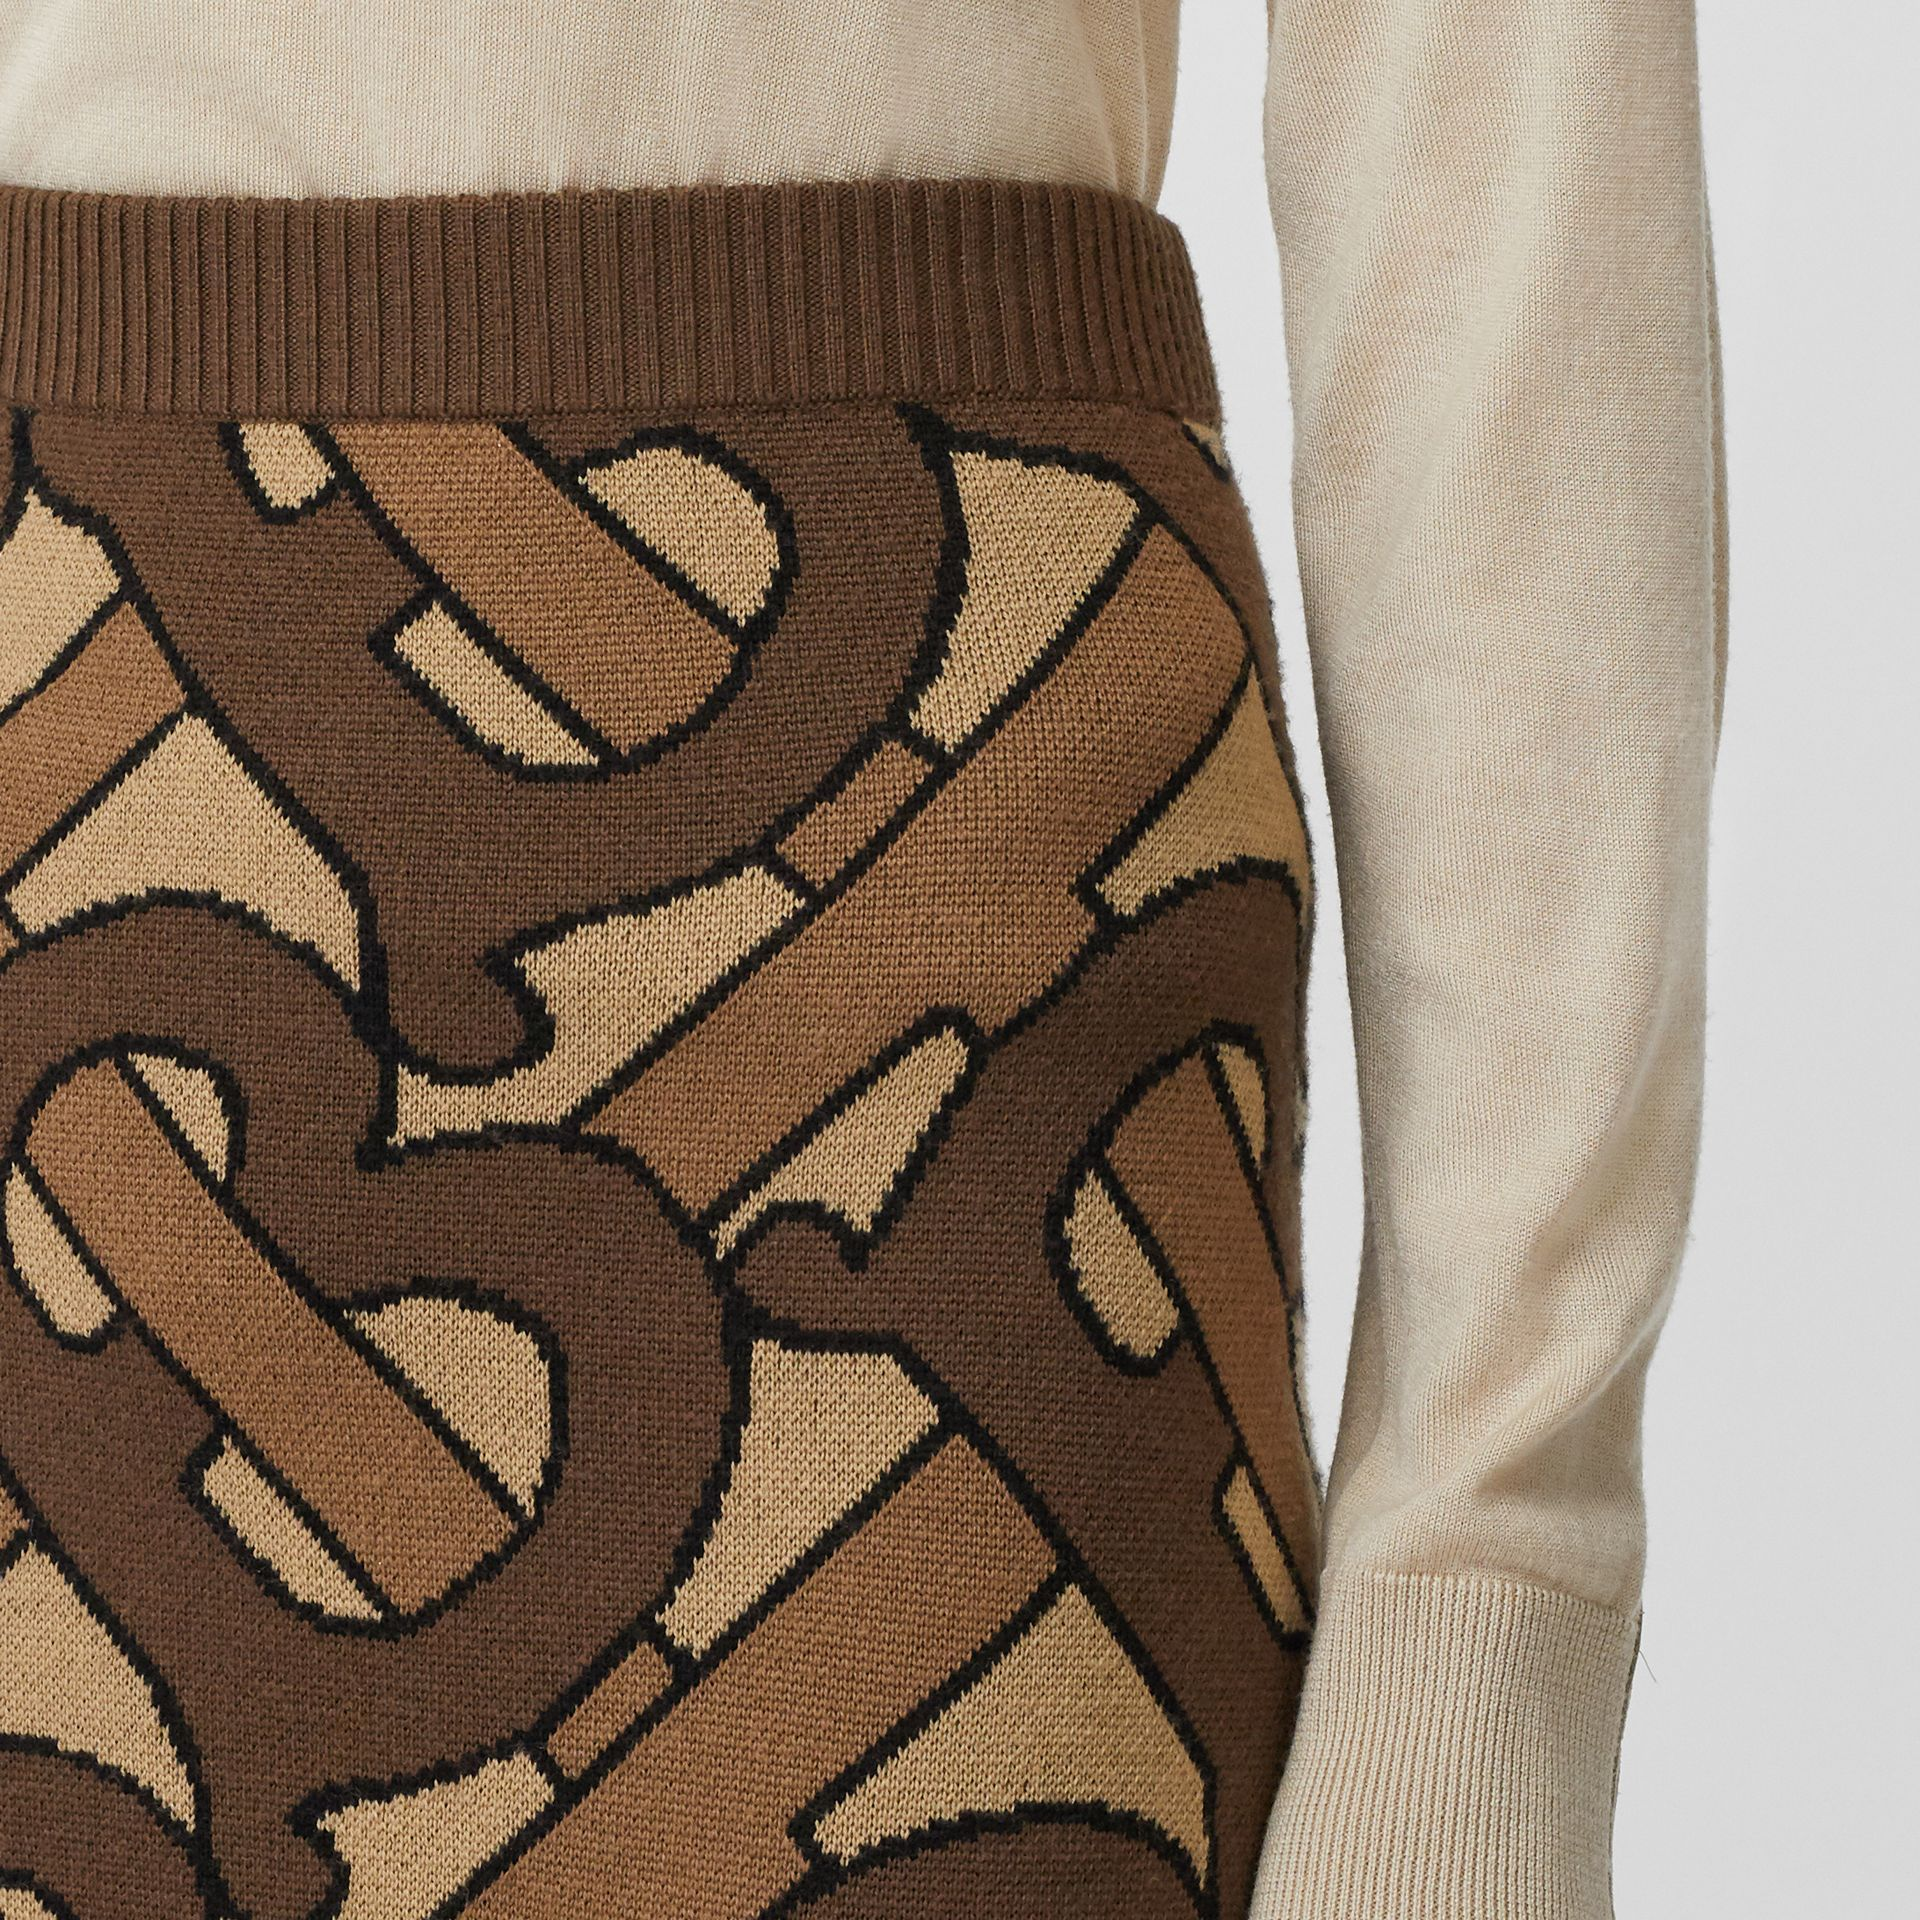 Monogram Intarsia Wool Pencil Skirt in Bridle Brown - Women | Burberry Australia - gallery image 1